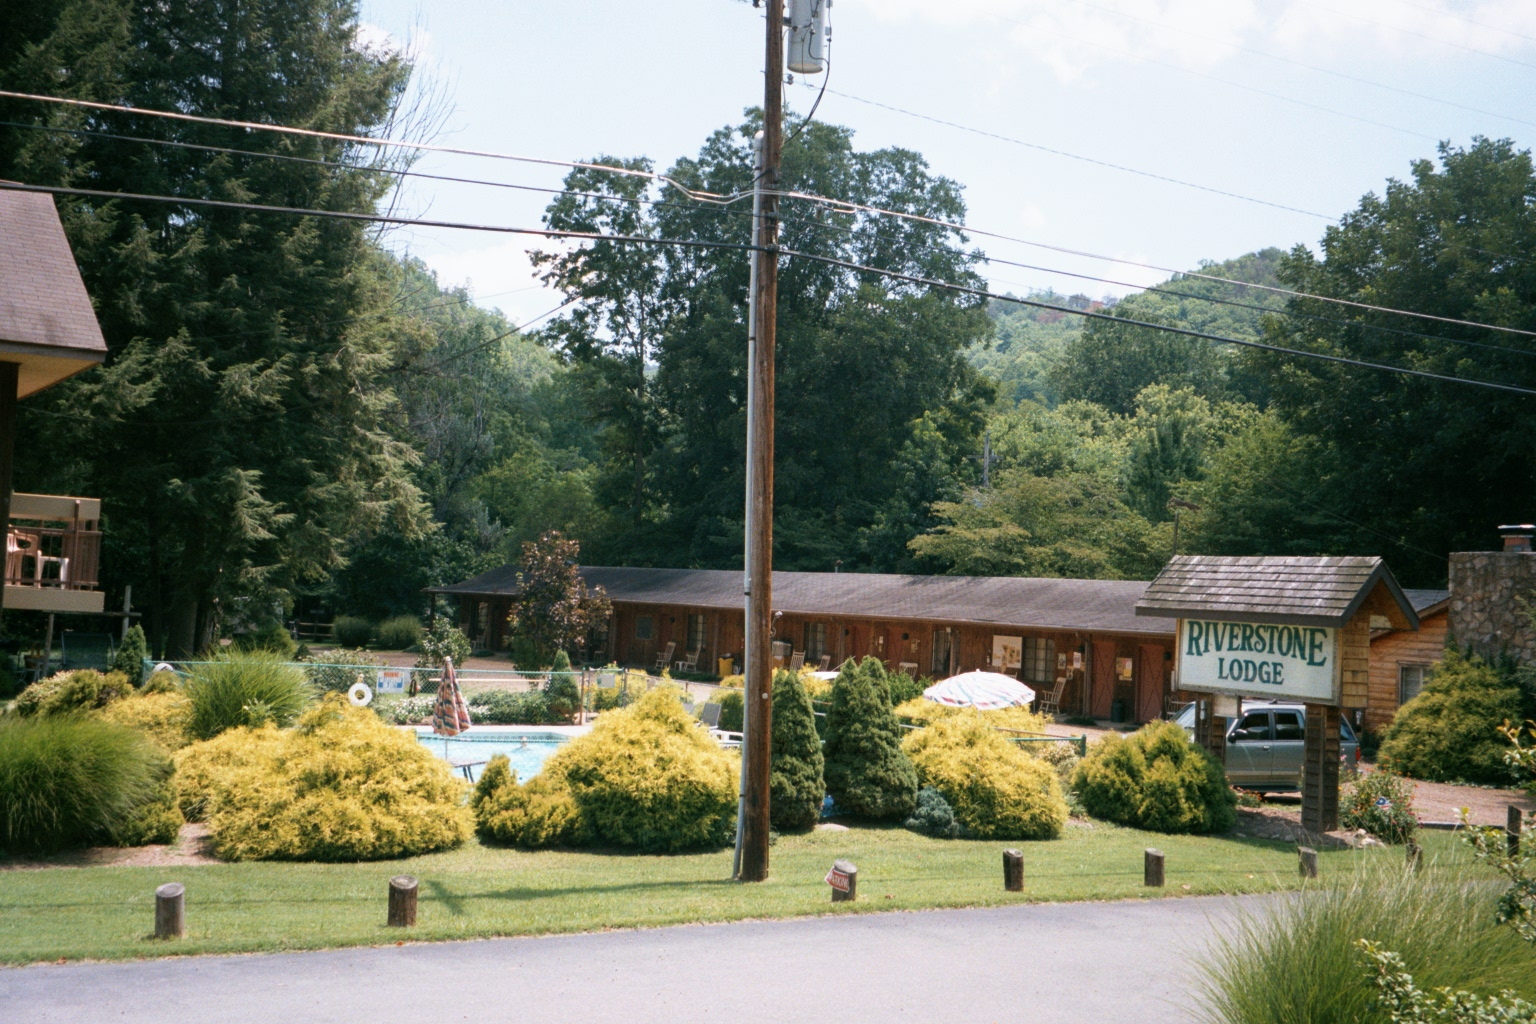 Townsend Tn Hotels Rouydadnews Info